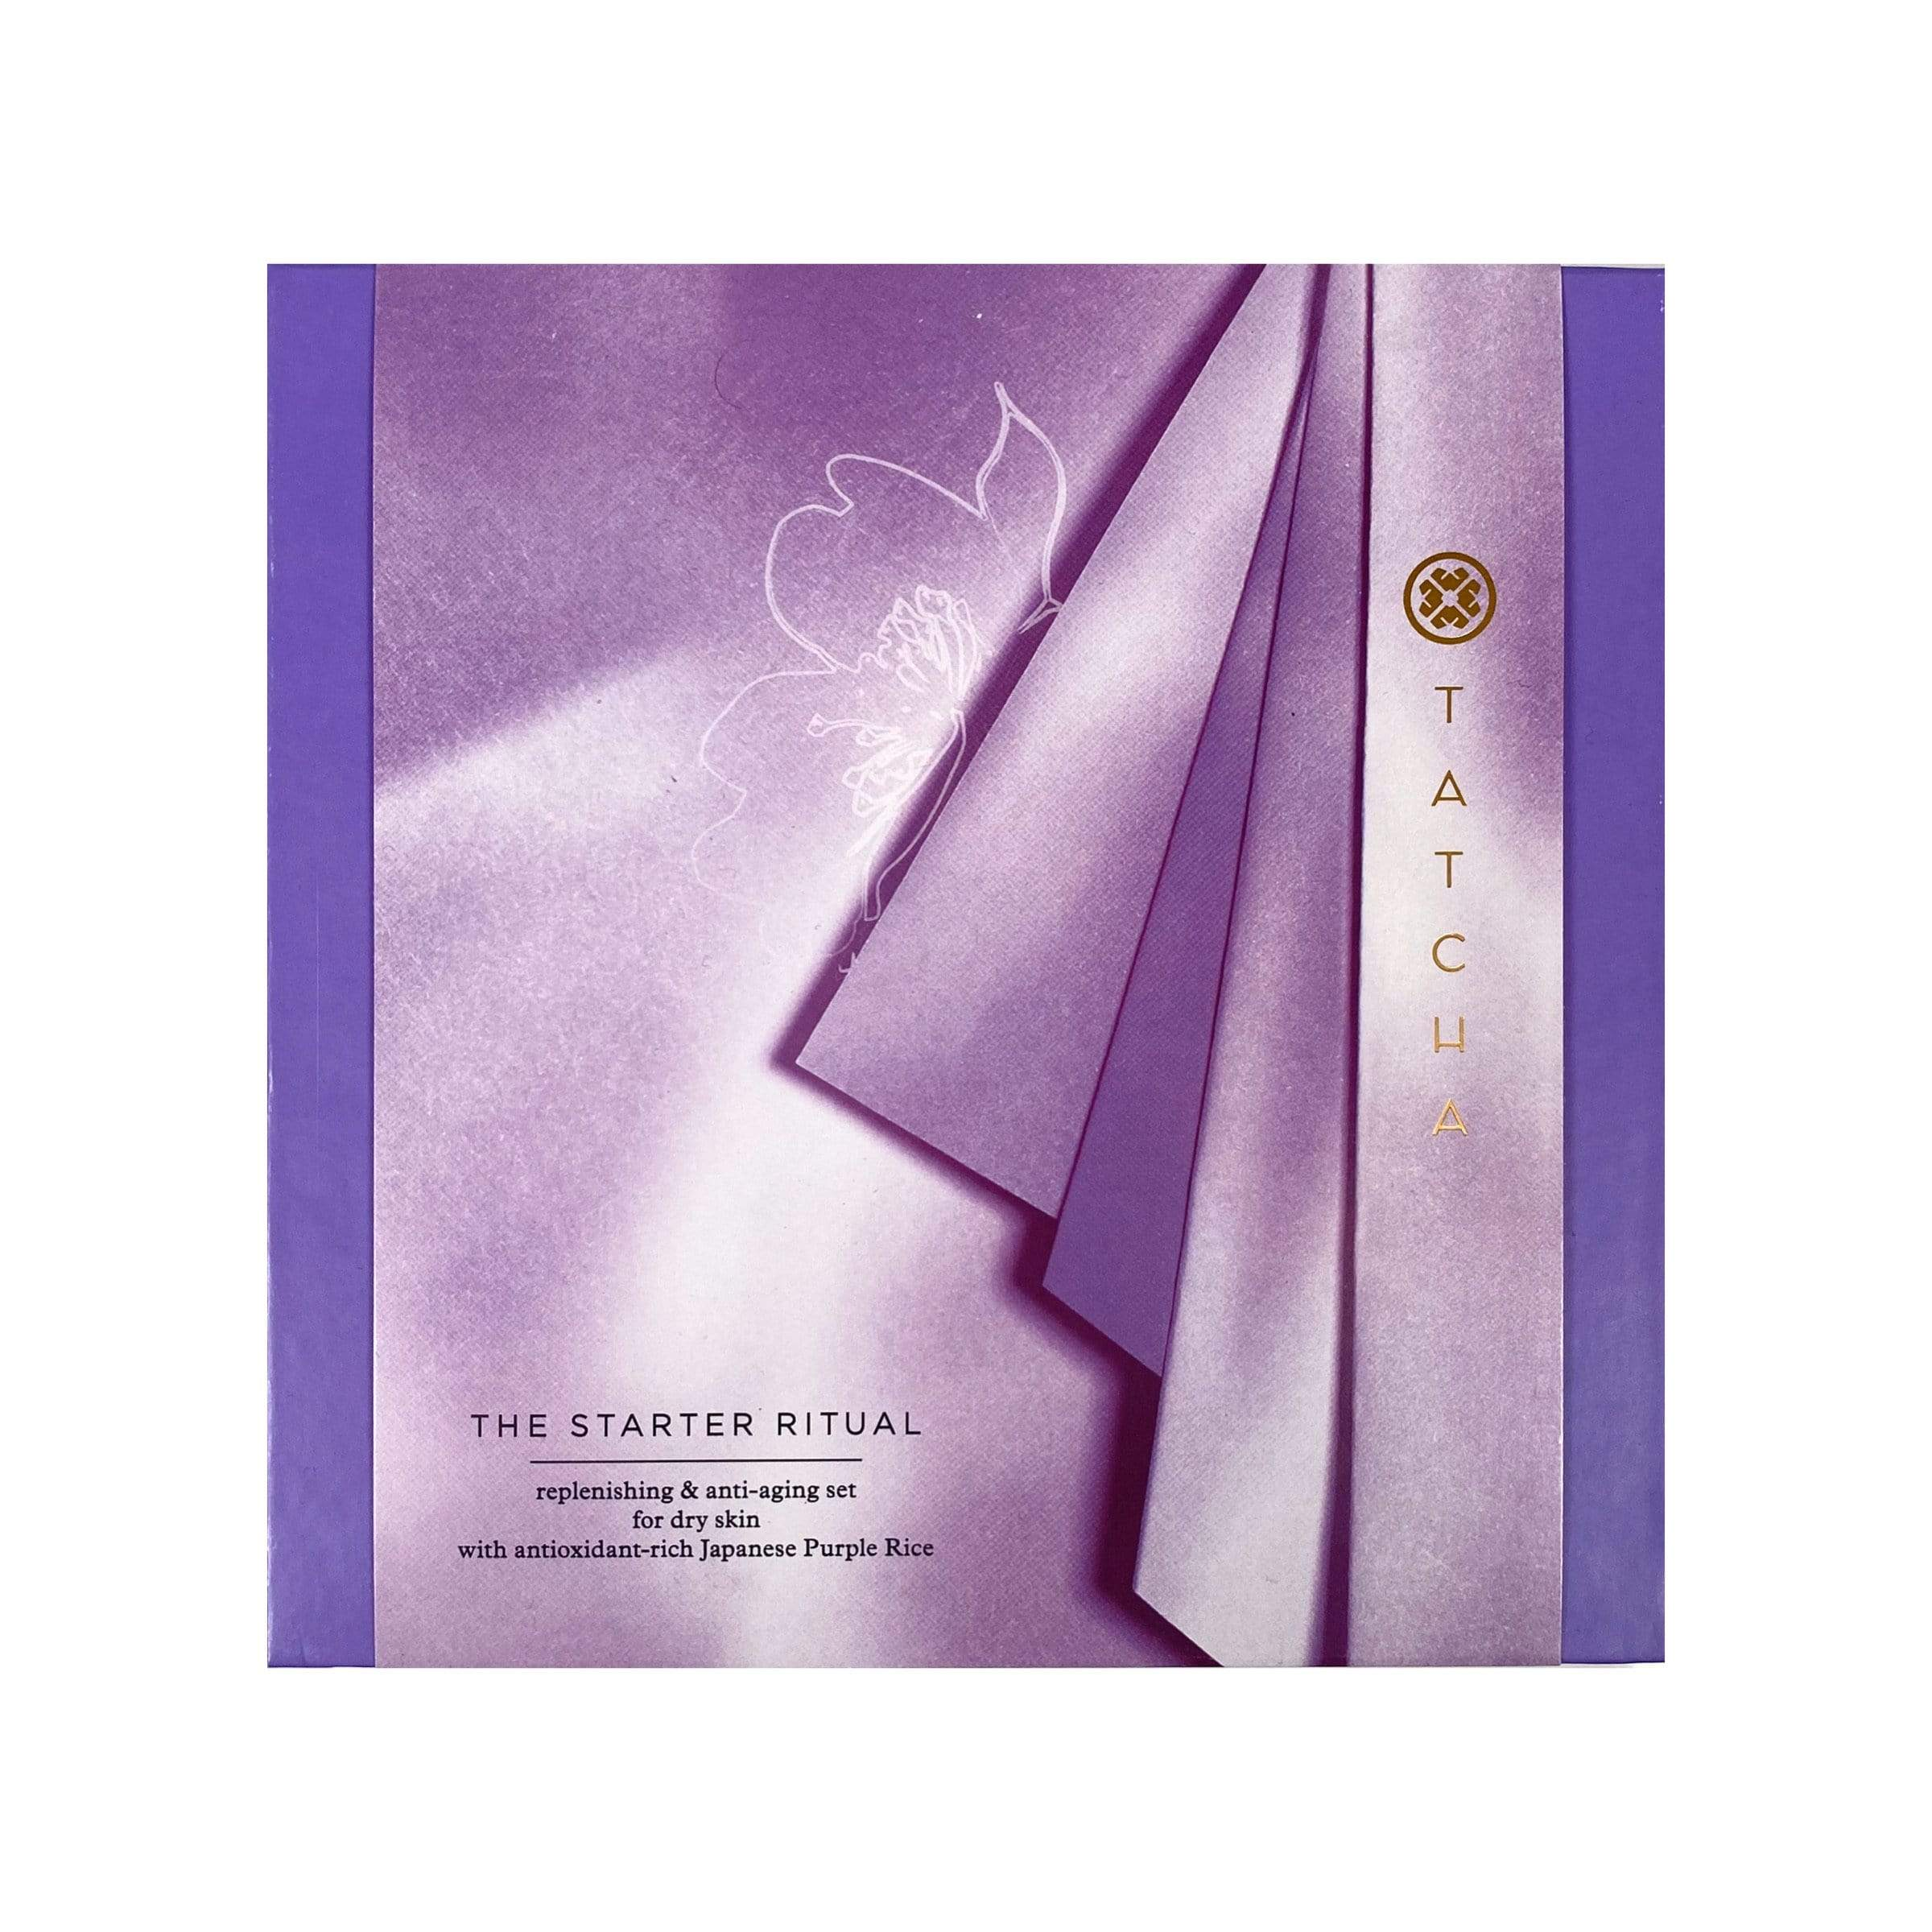 Tatcha Gift Sets TATCHA The Starter Ritual Ultra-Hydrating & Anti-Aging Set - Dry Skin